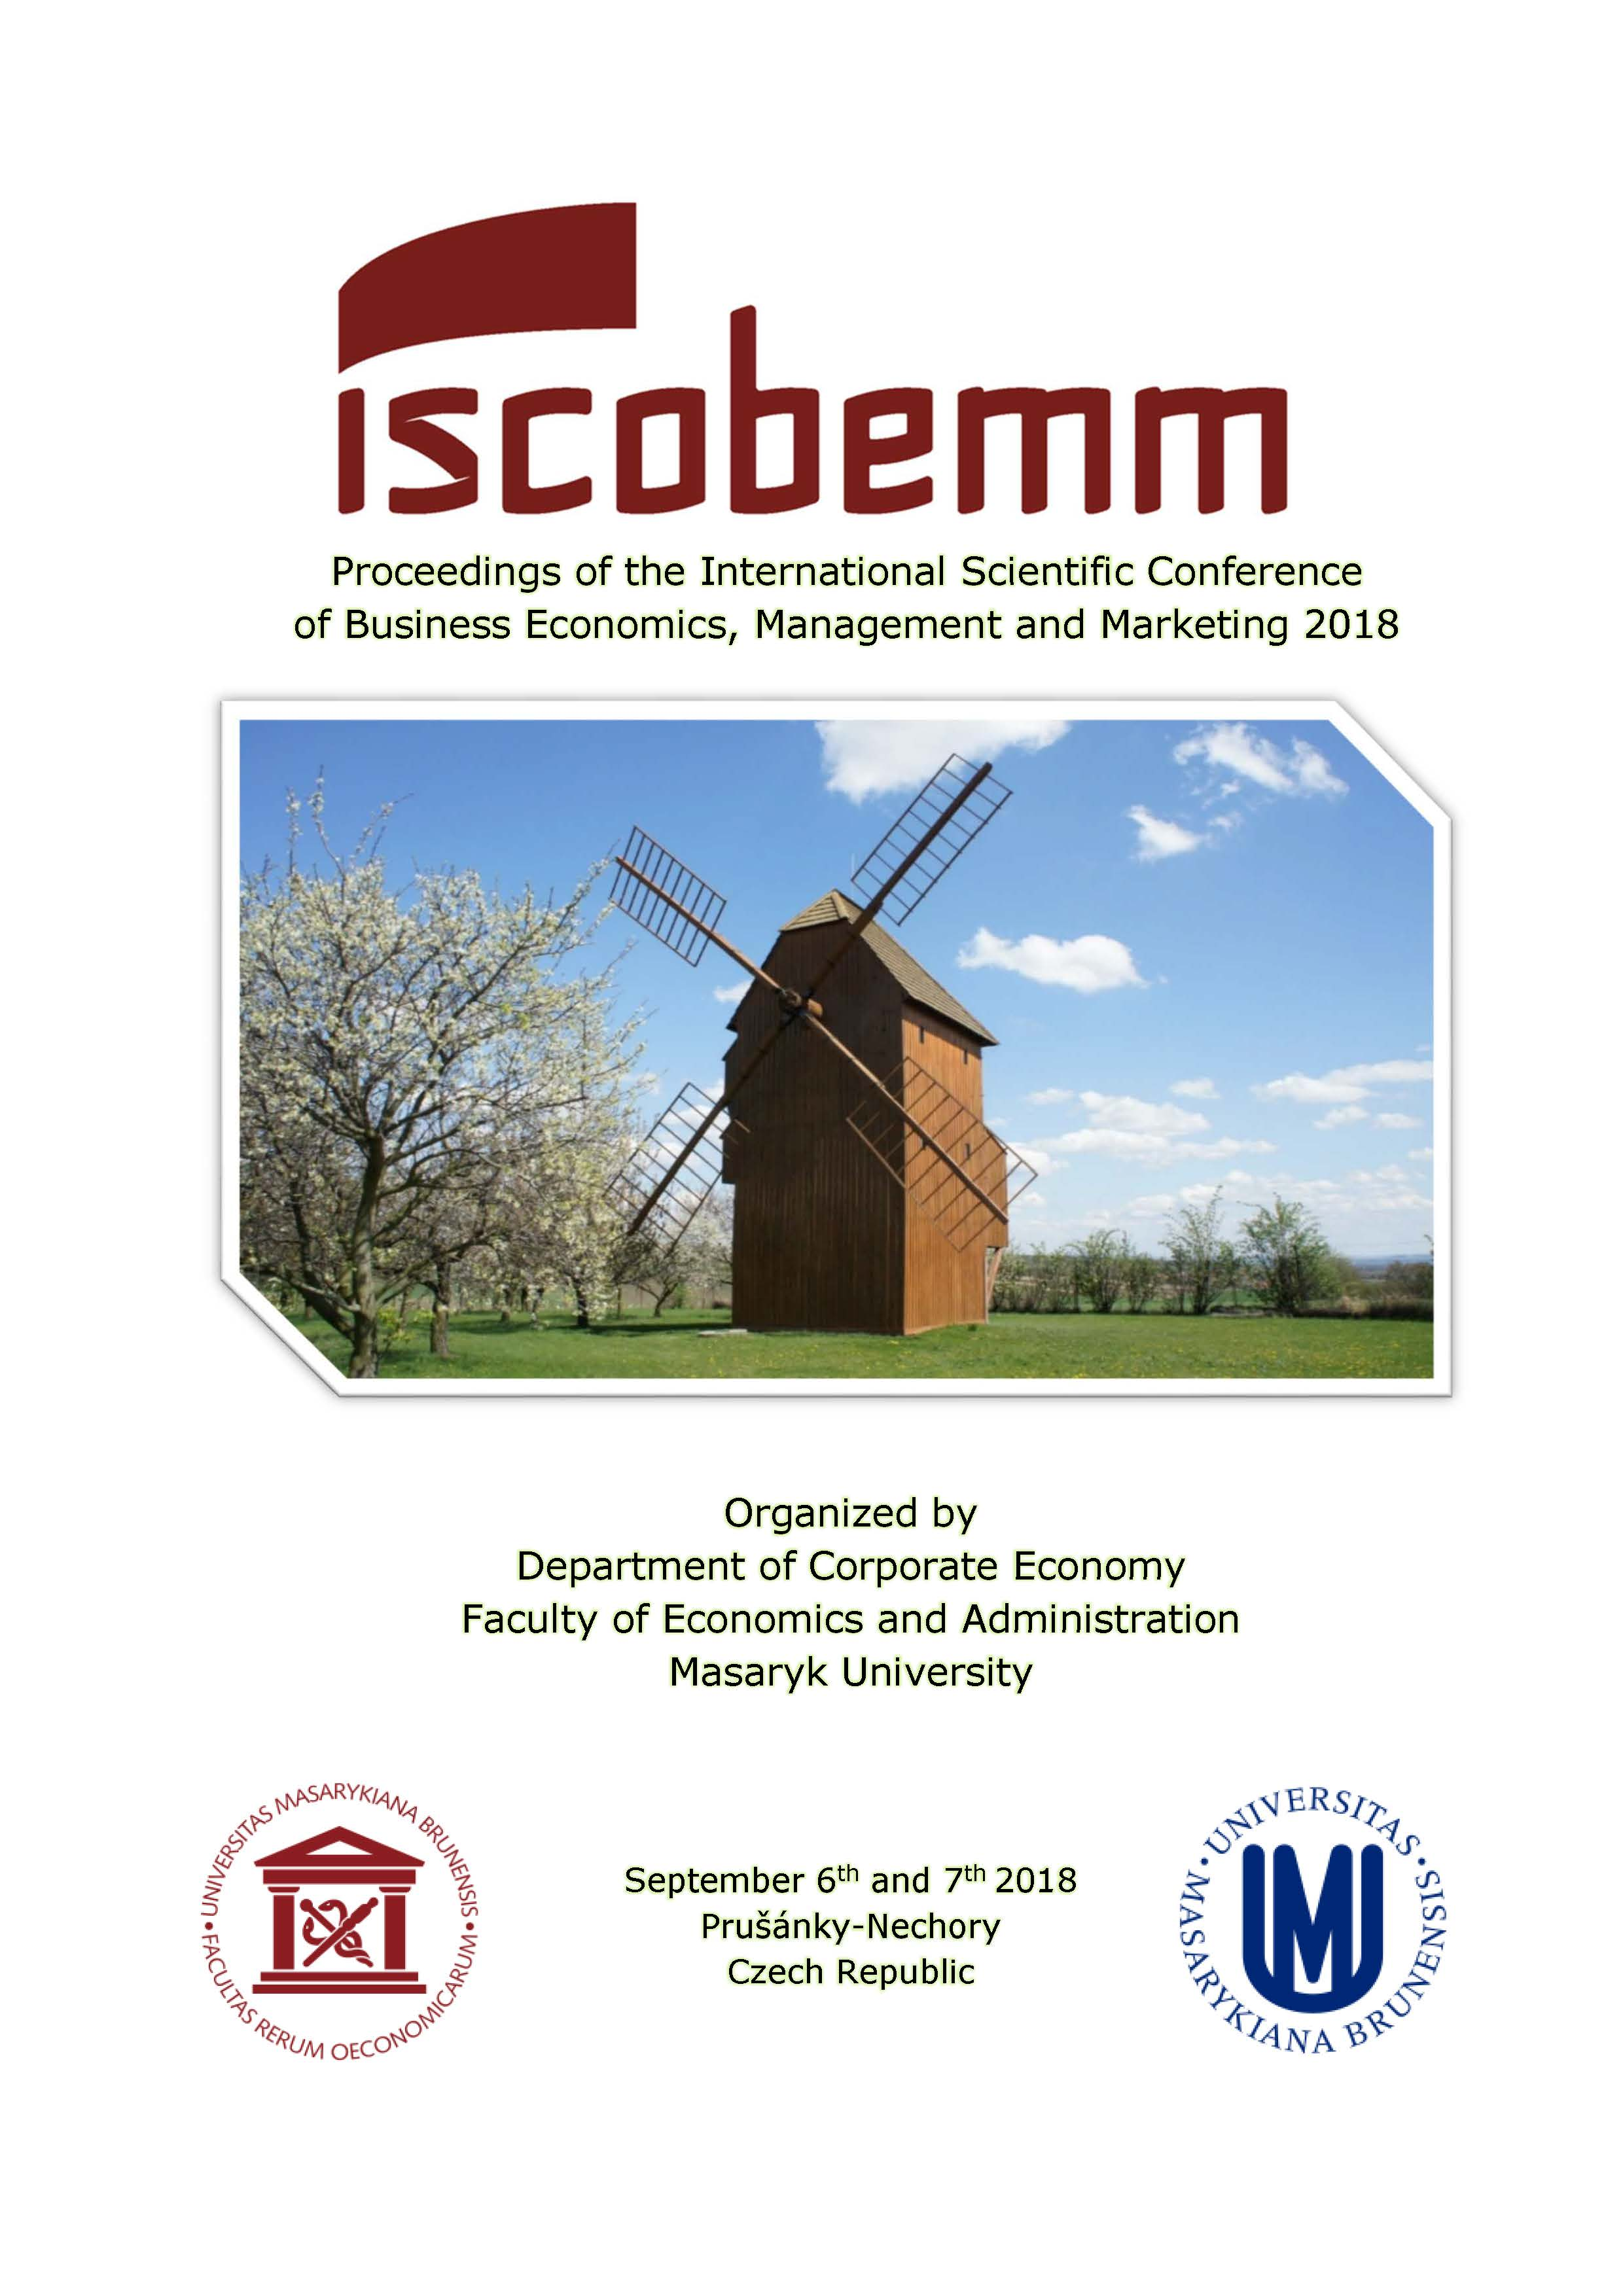 Obálka pro Proceedings of the International Scientific Conference of Business Economics, Management and Marketing 2018 (ISCOBEMM 2018)